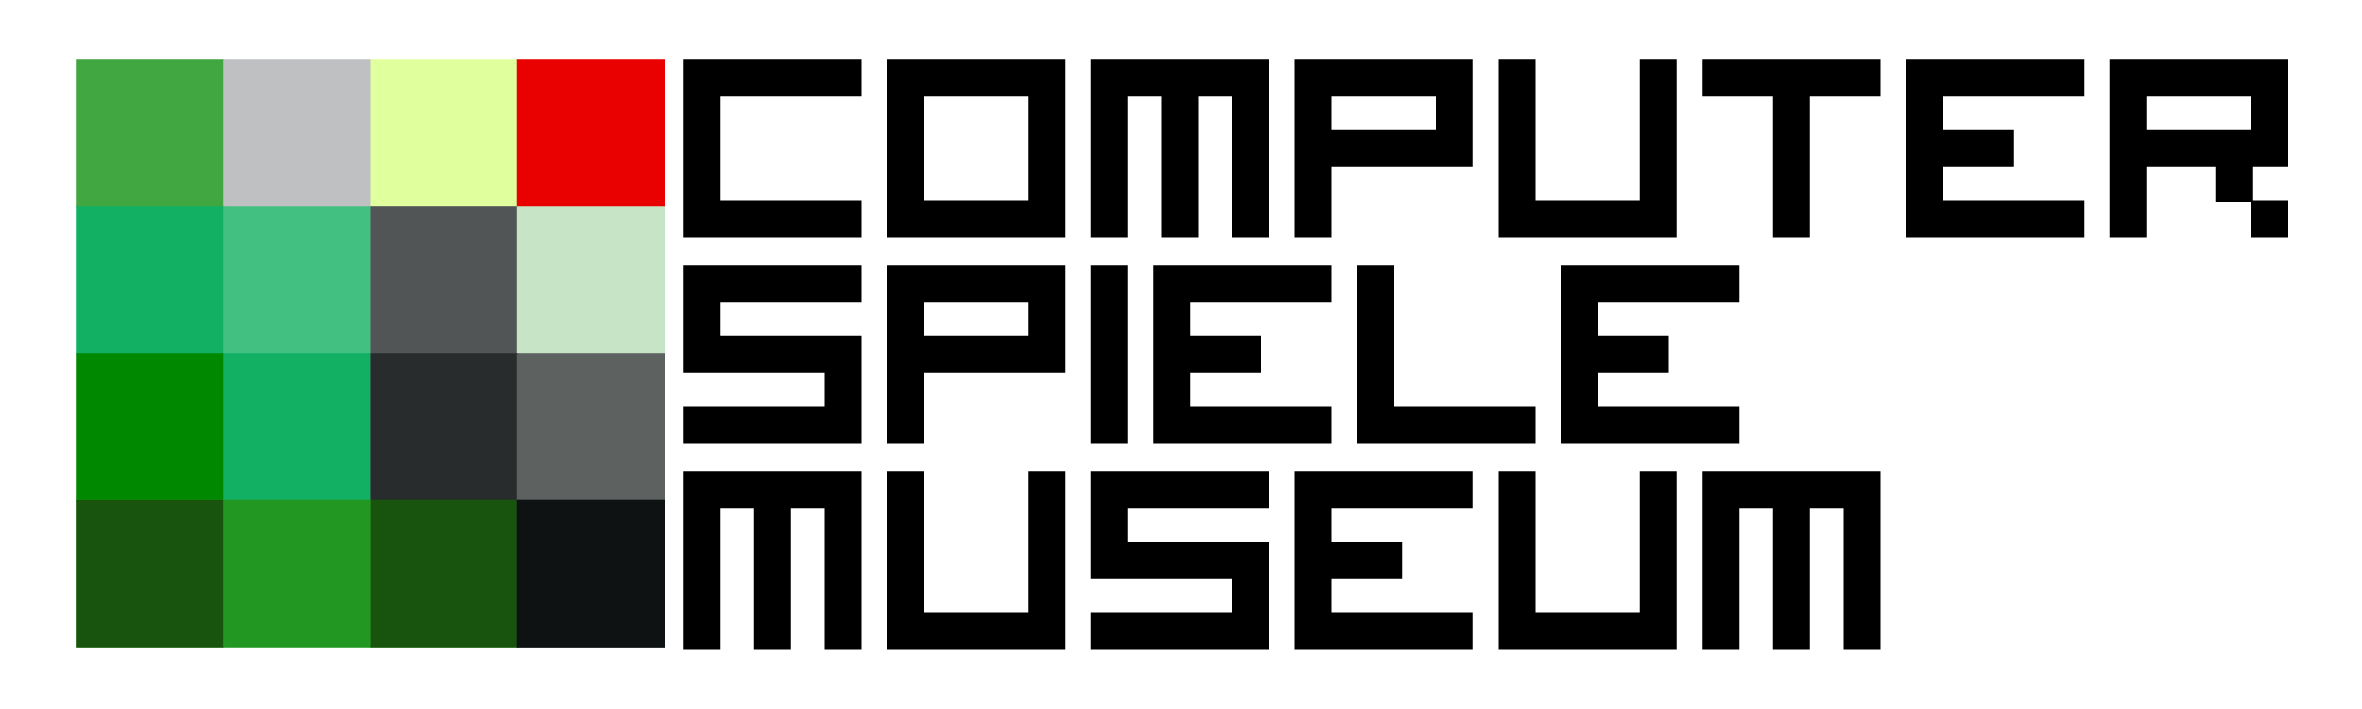 Computerspielemmuseum Berlin